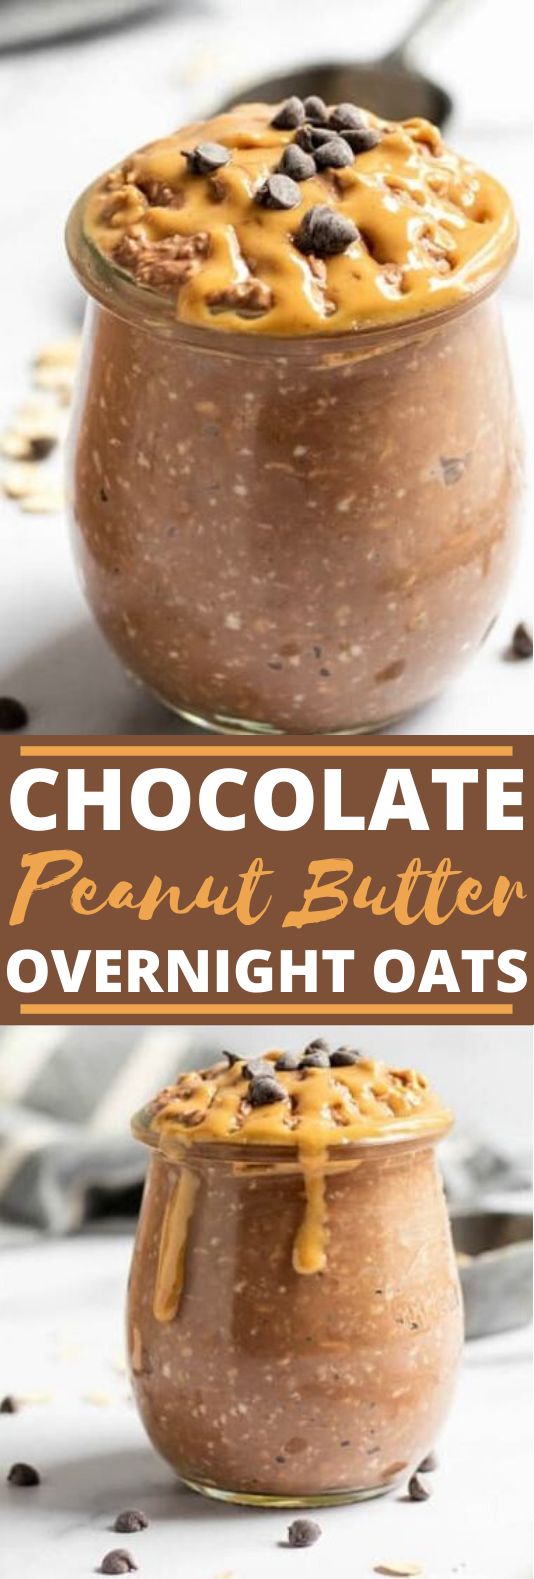 Chocolate Peanut Butter Overnight Oats #healthy #breakfast #keto #recipes #peanutbutter